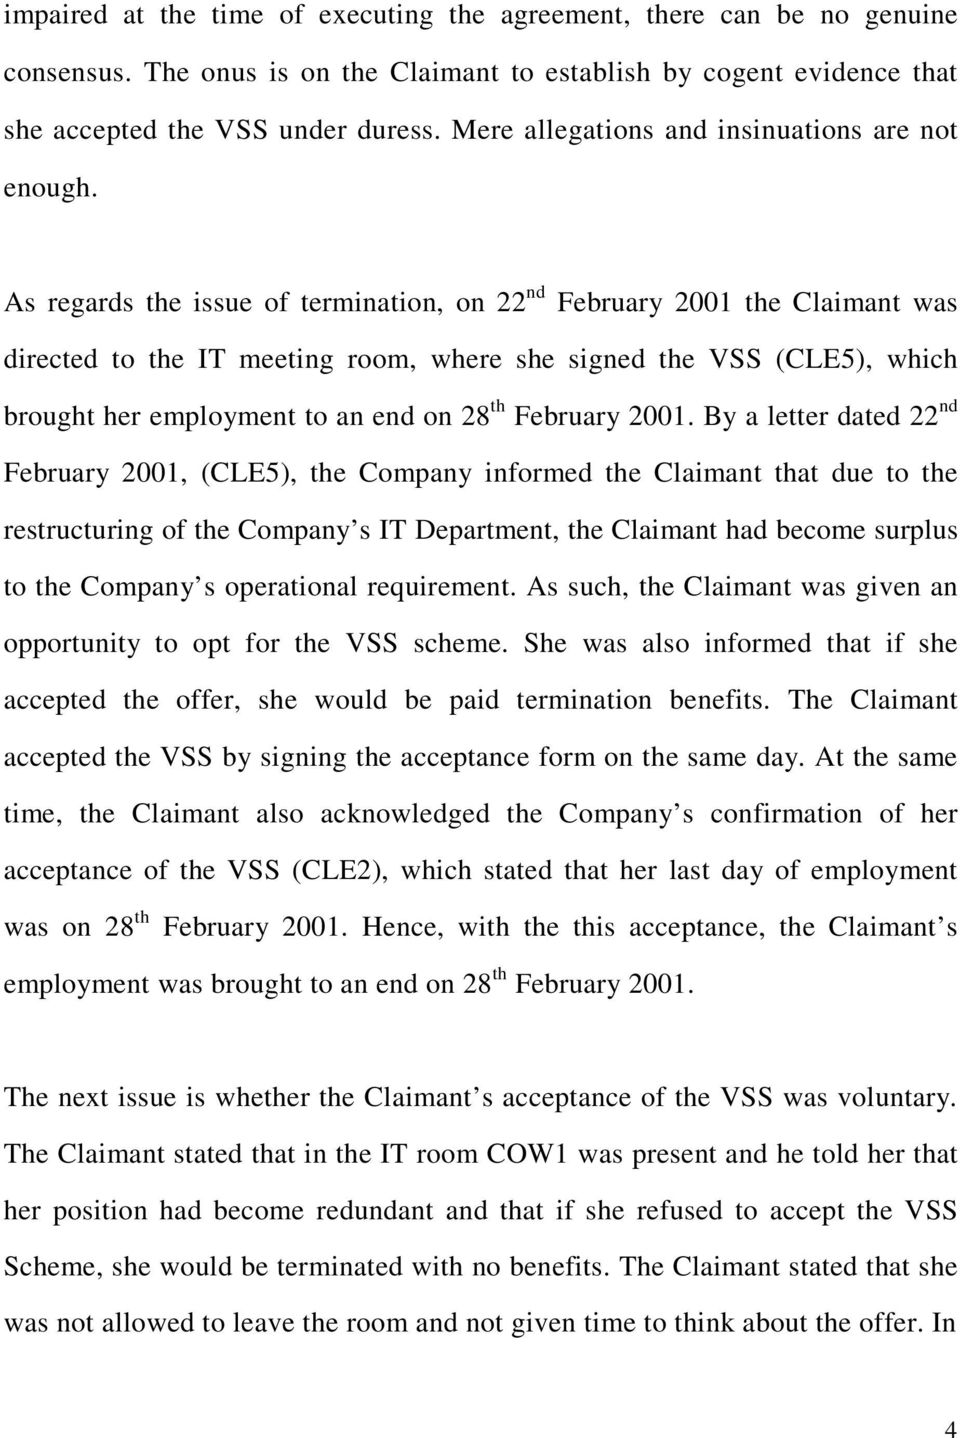 As regards the issue of termination, on 22 nd February 2001 the Claimant was directed to the IT meeting room, where she signed the VSS (CLE5), which brought her employment to an end on 28 th February